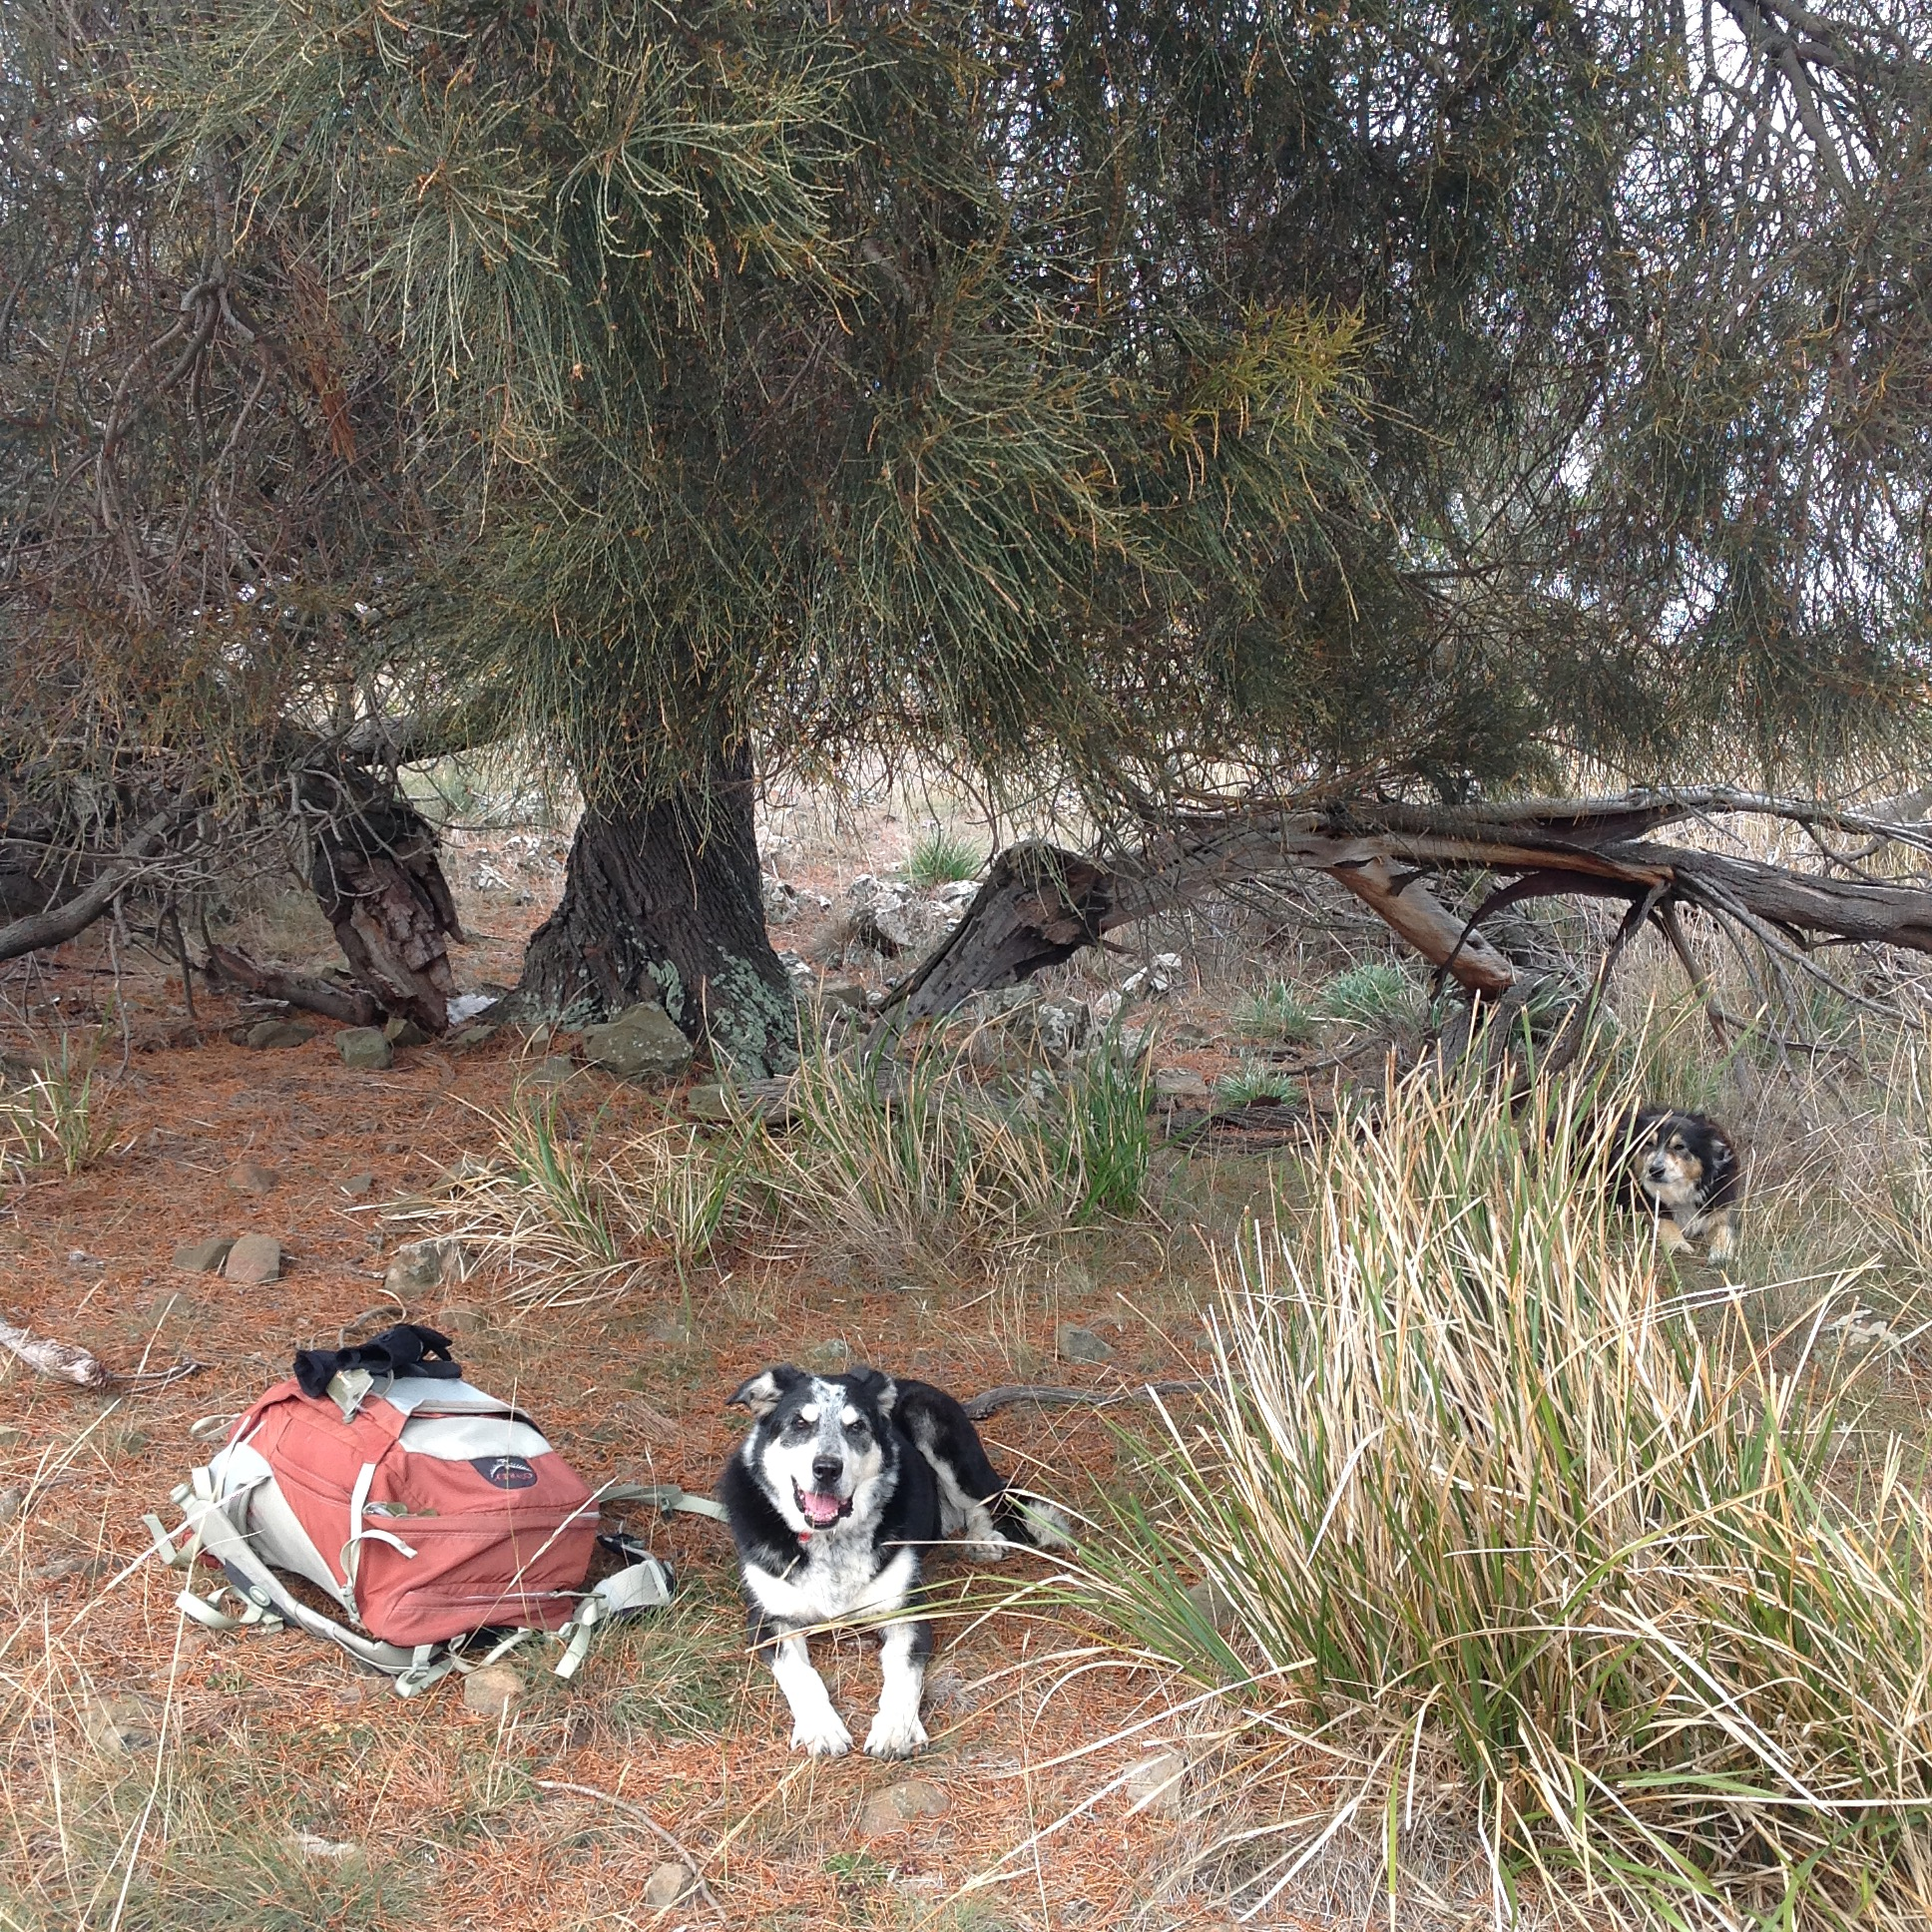 P10: My favourite rest spot, under a gnarled she-oak (casuarina). I'll try to hunker down out of the wind. I did put in an extra jacket this morning, but didn't imagine I'd want it!